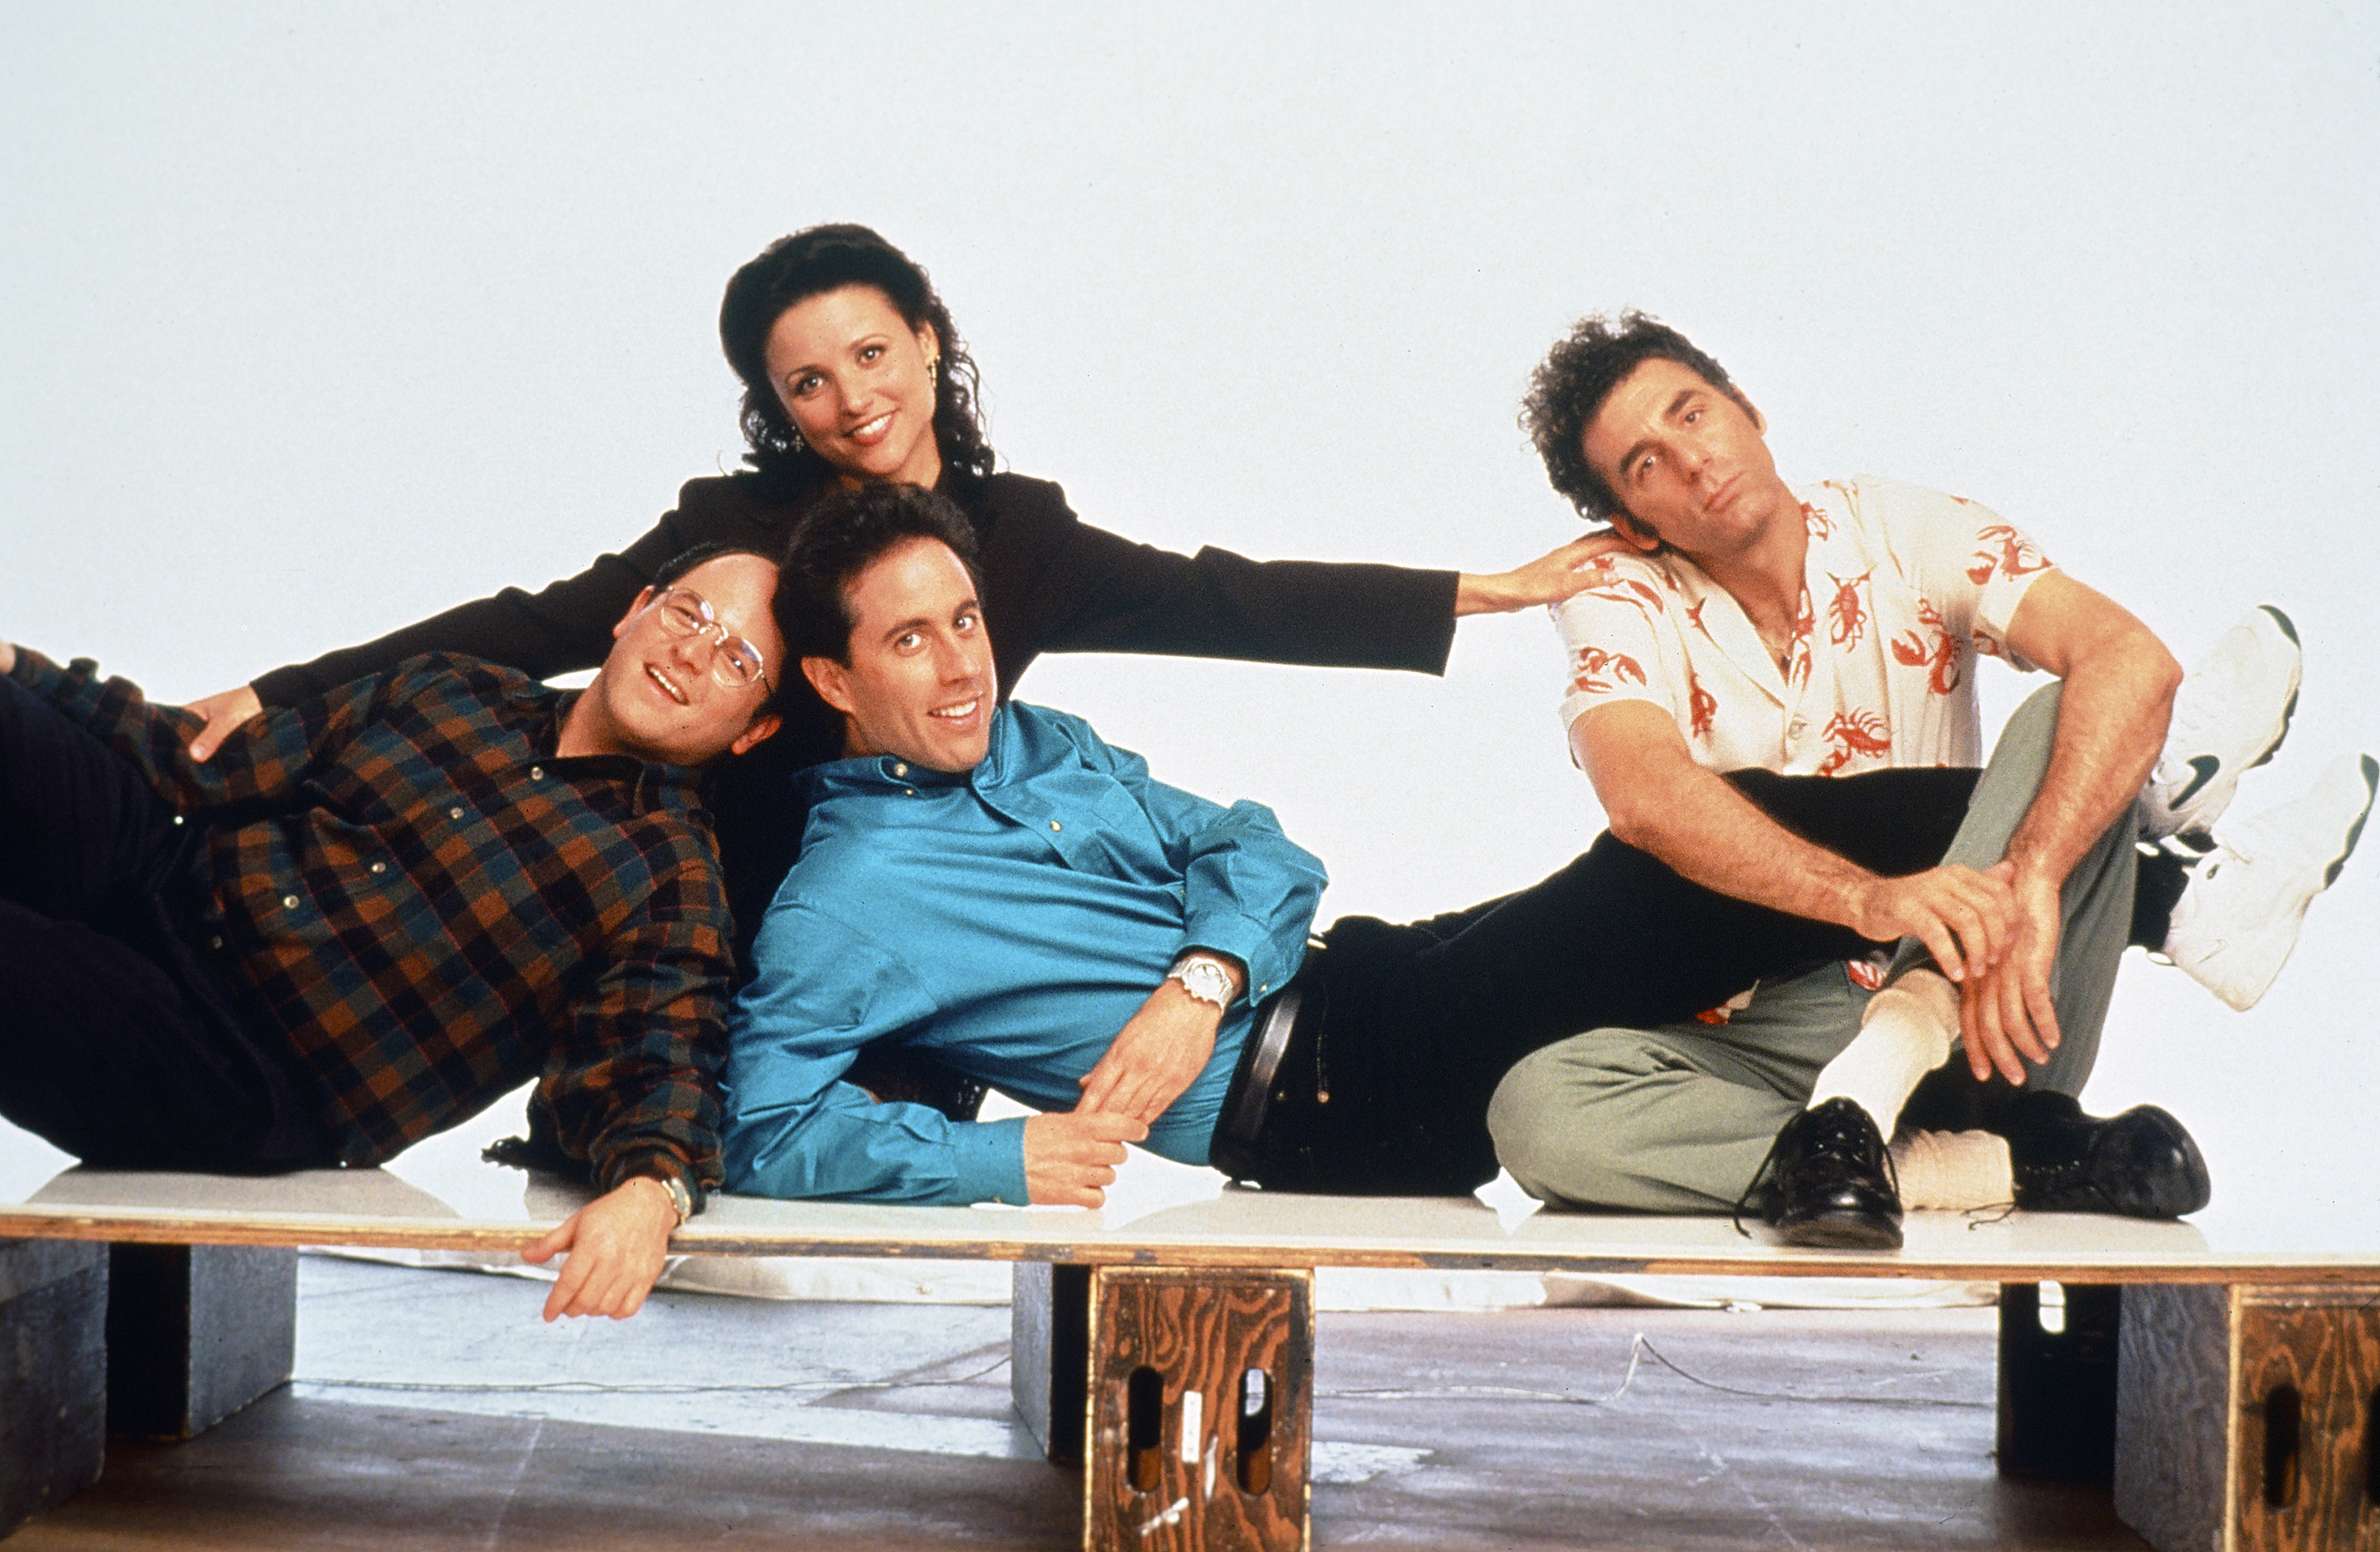 Jerry George Kramer Elaine Rolling Stone No Disassemble The Behind Scenes Pic Of Day Is Alive